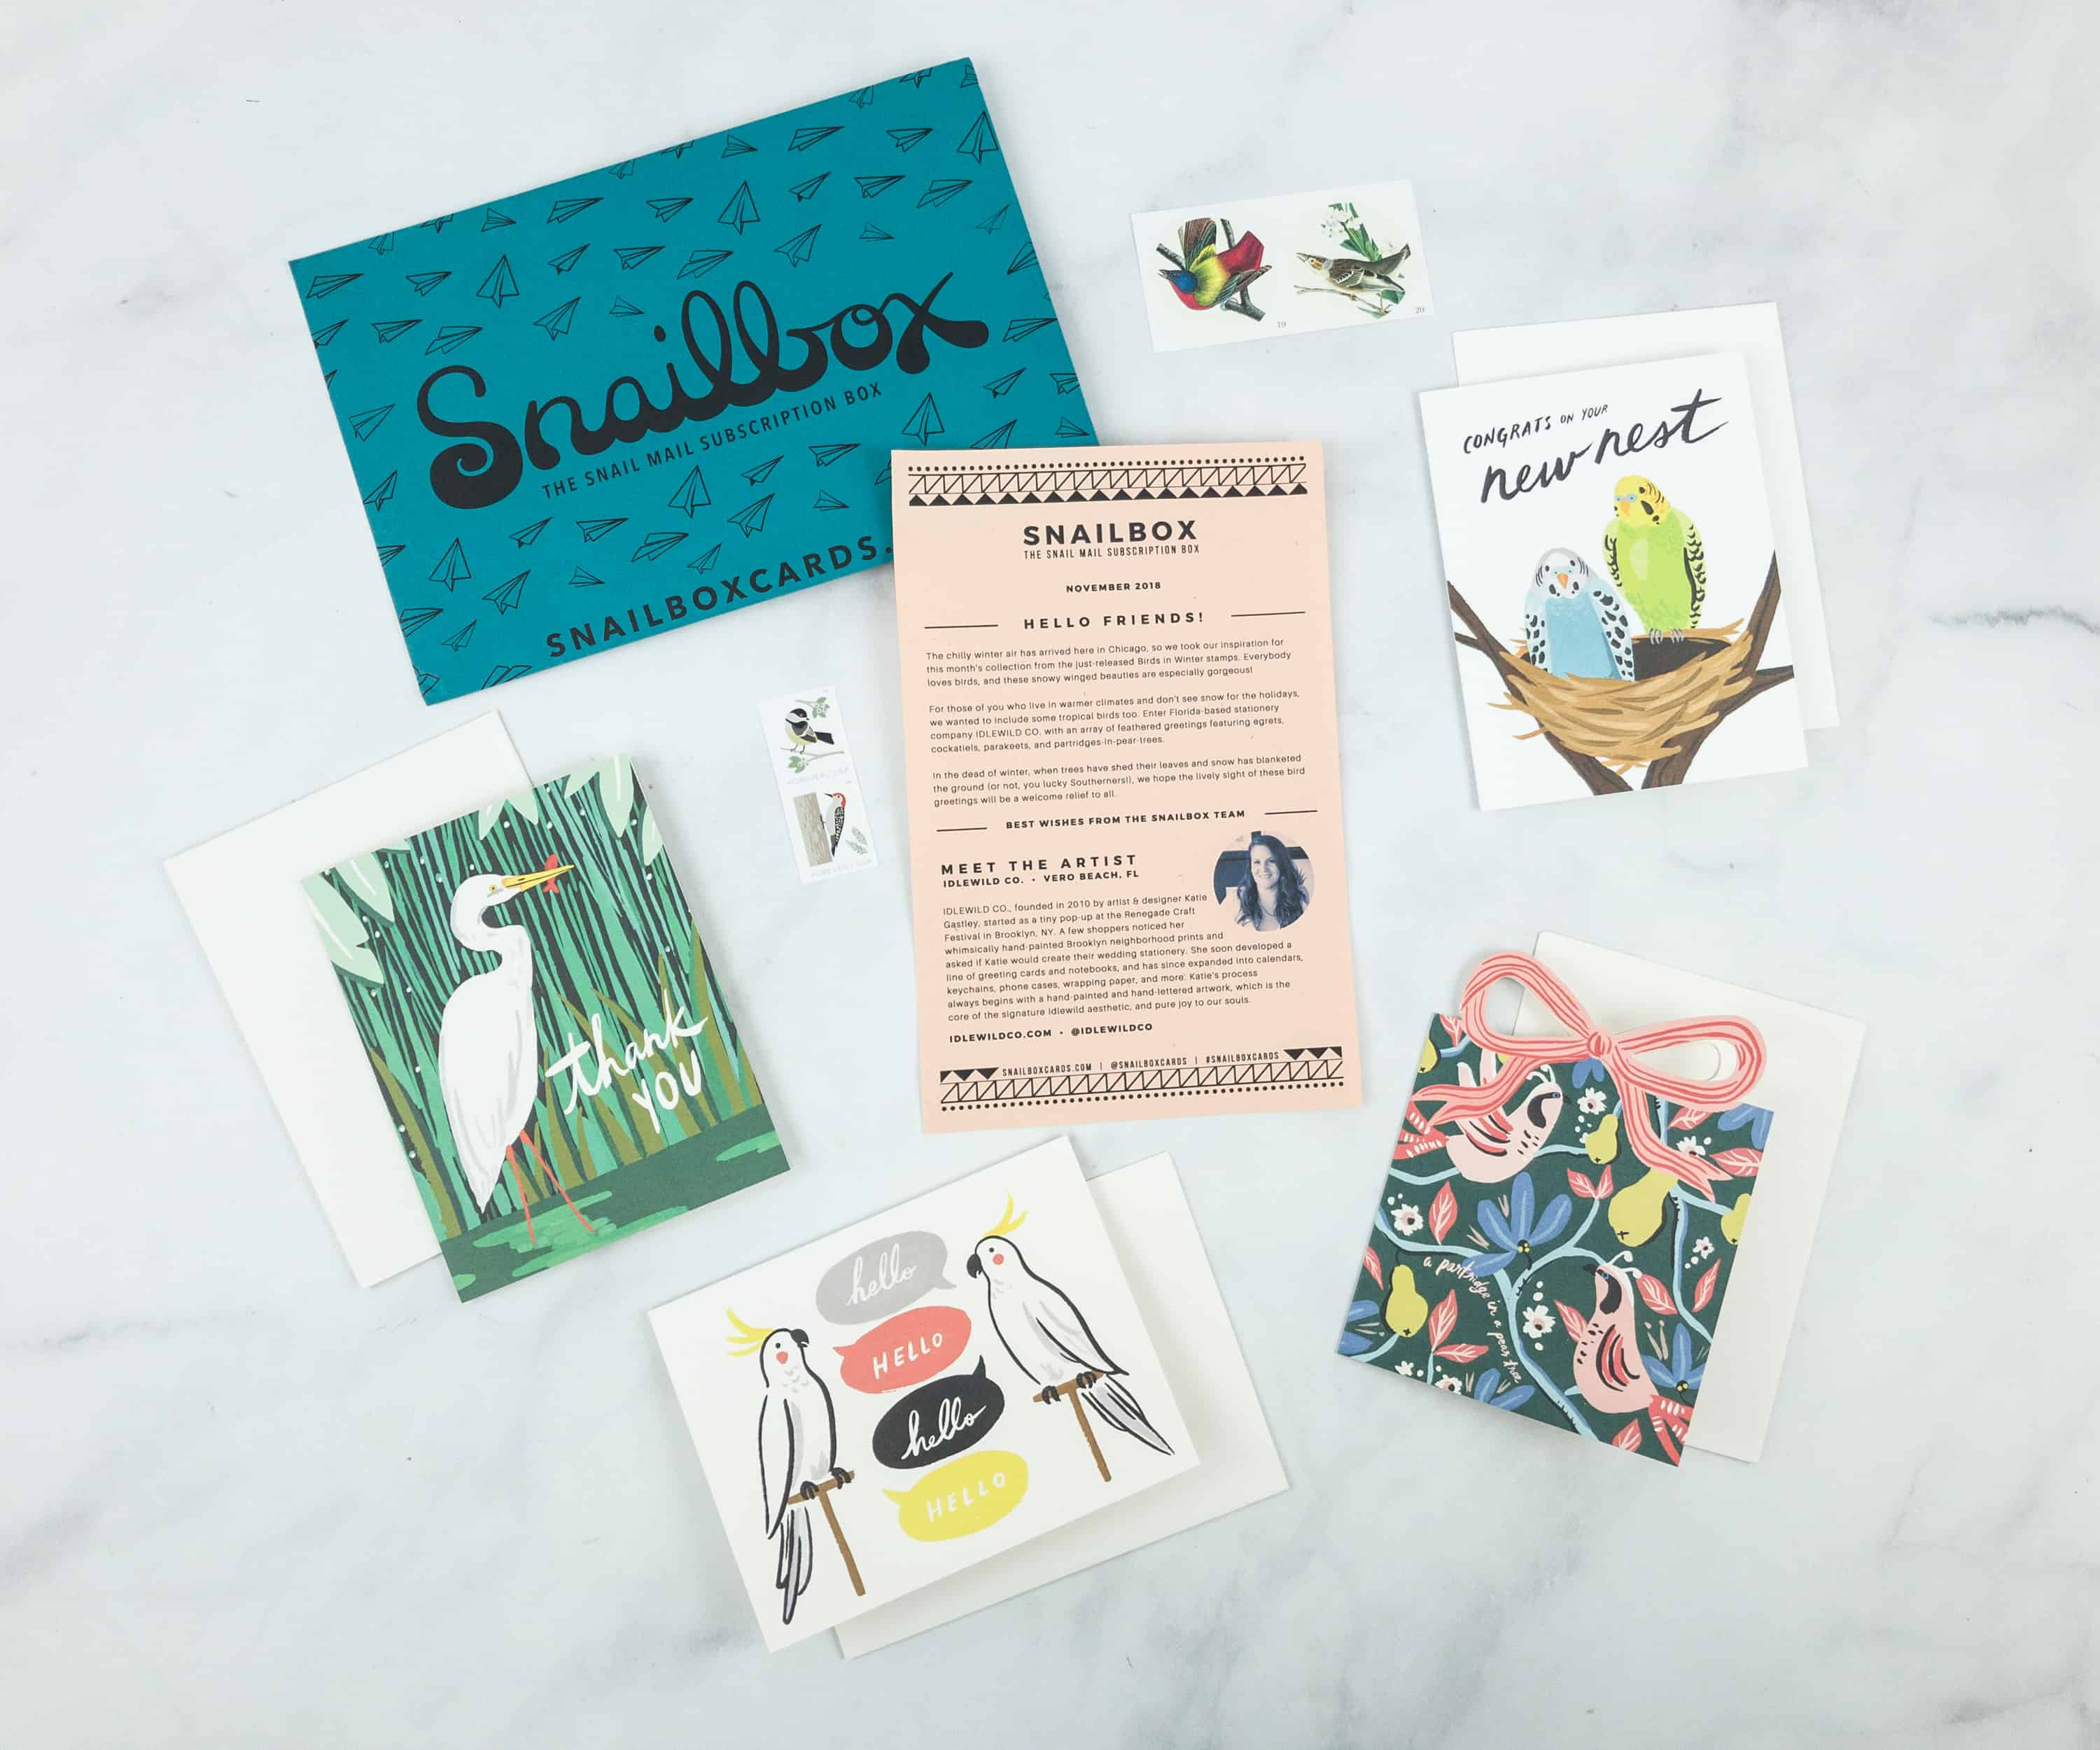 Snailbox November 2018 Subscription Box Review + Coupon